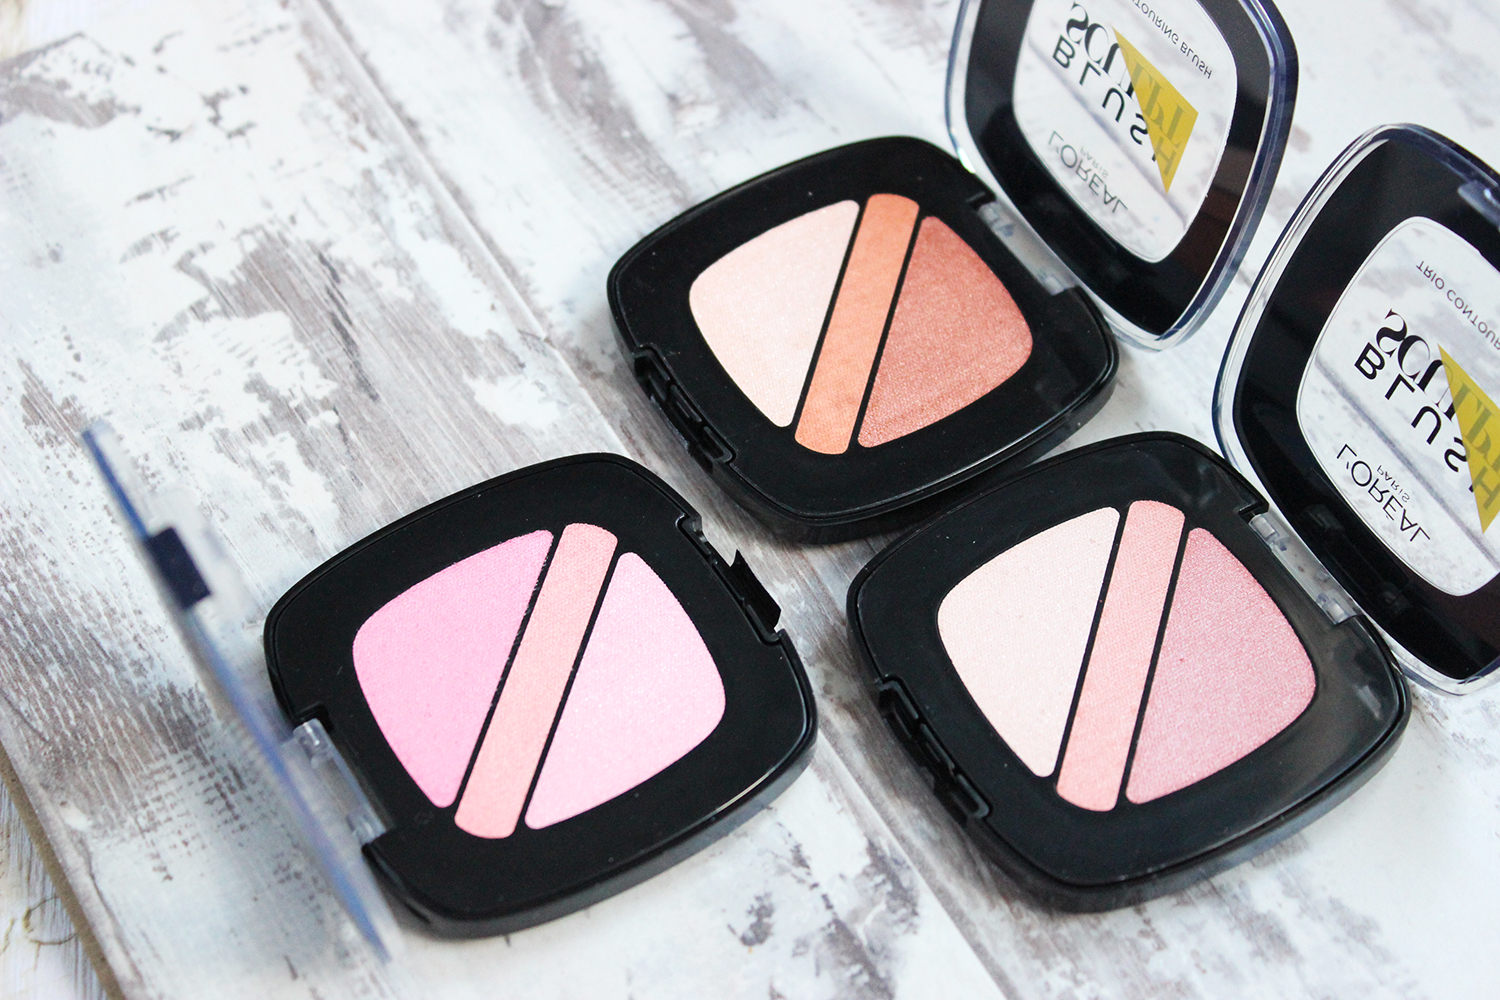 L'Oreal Infallible Blush Sculpt review